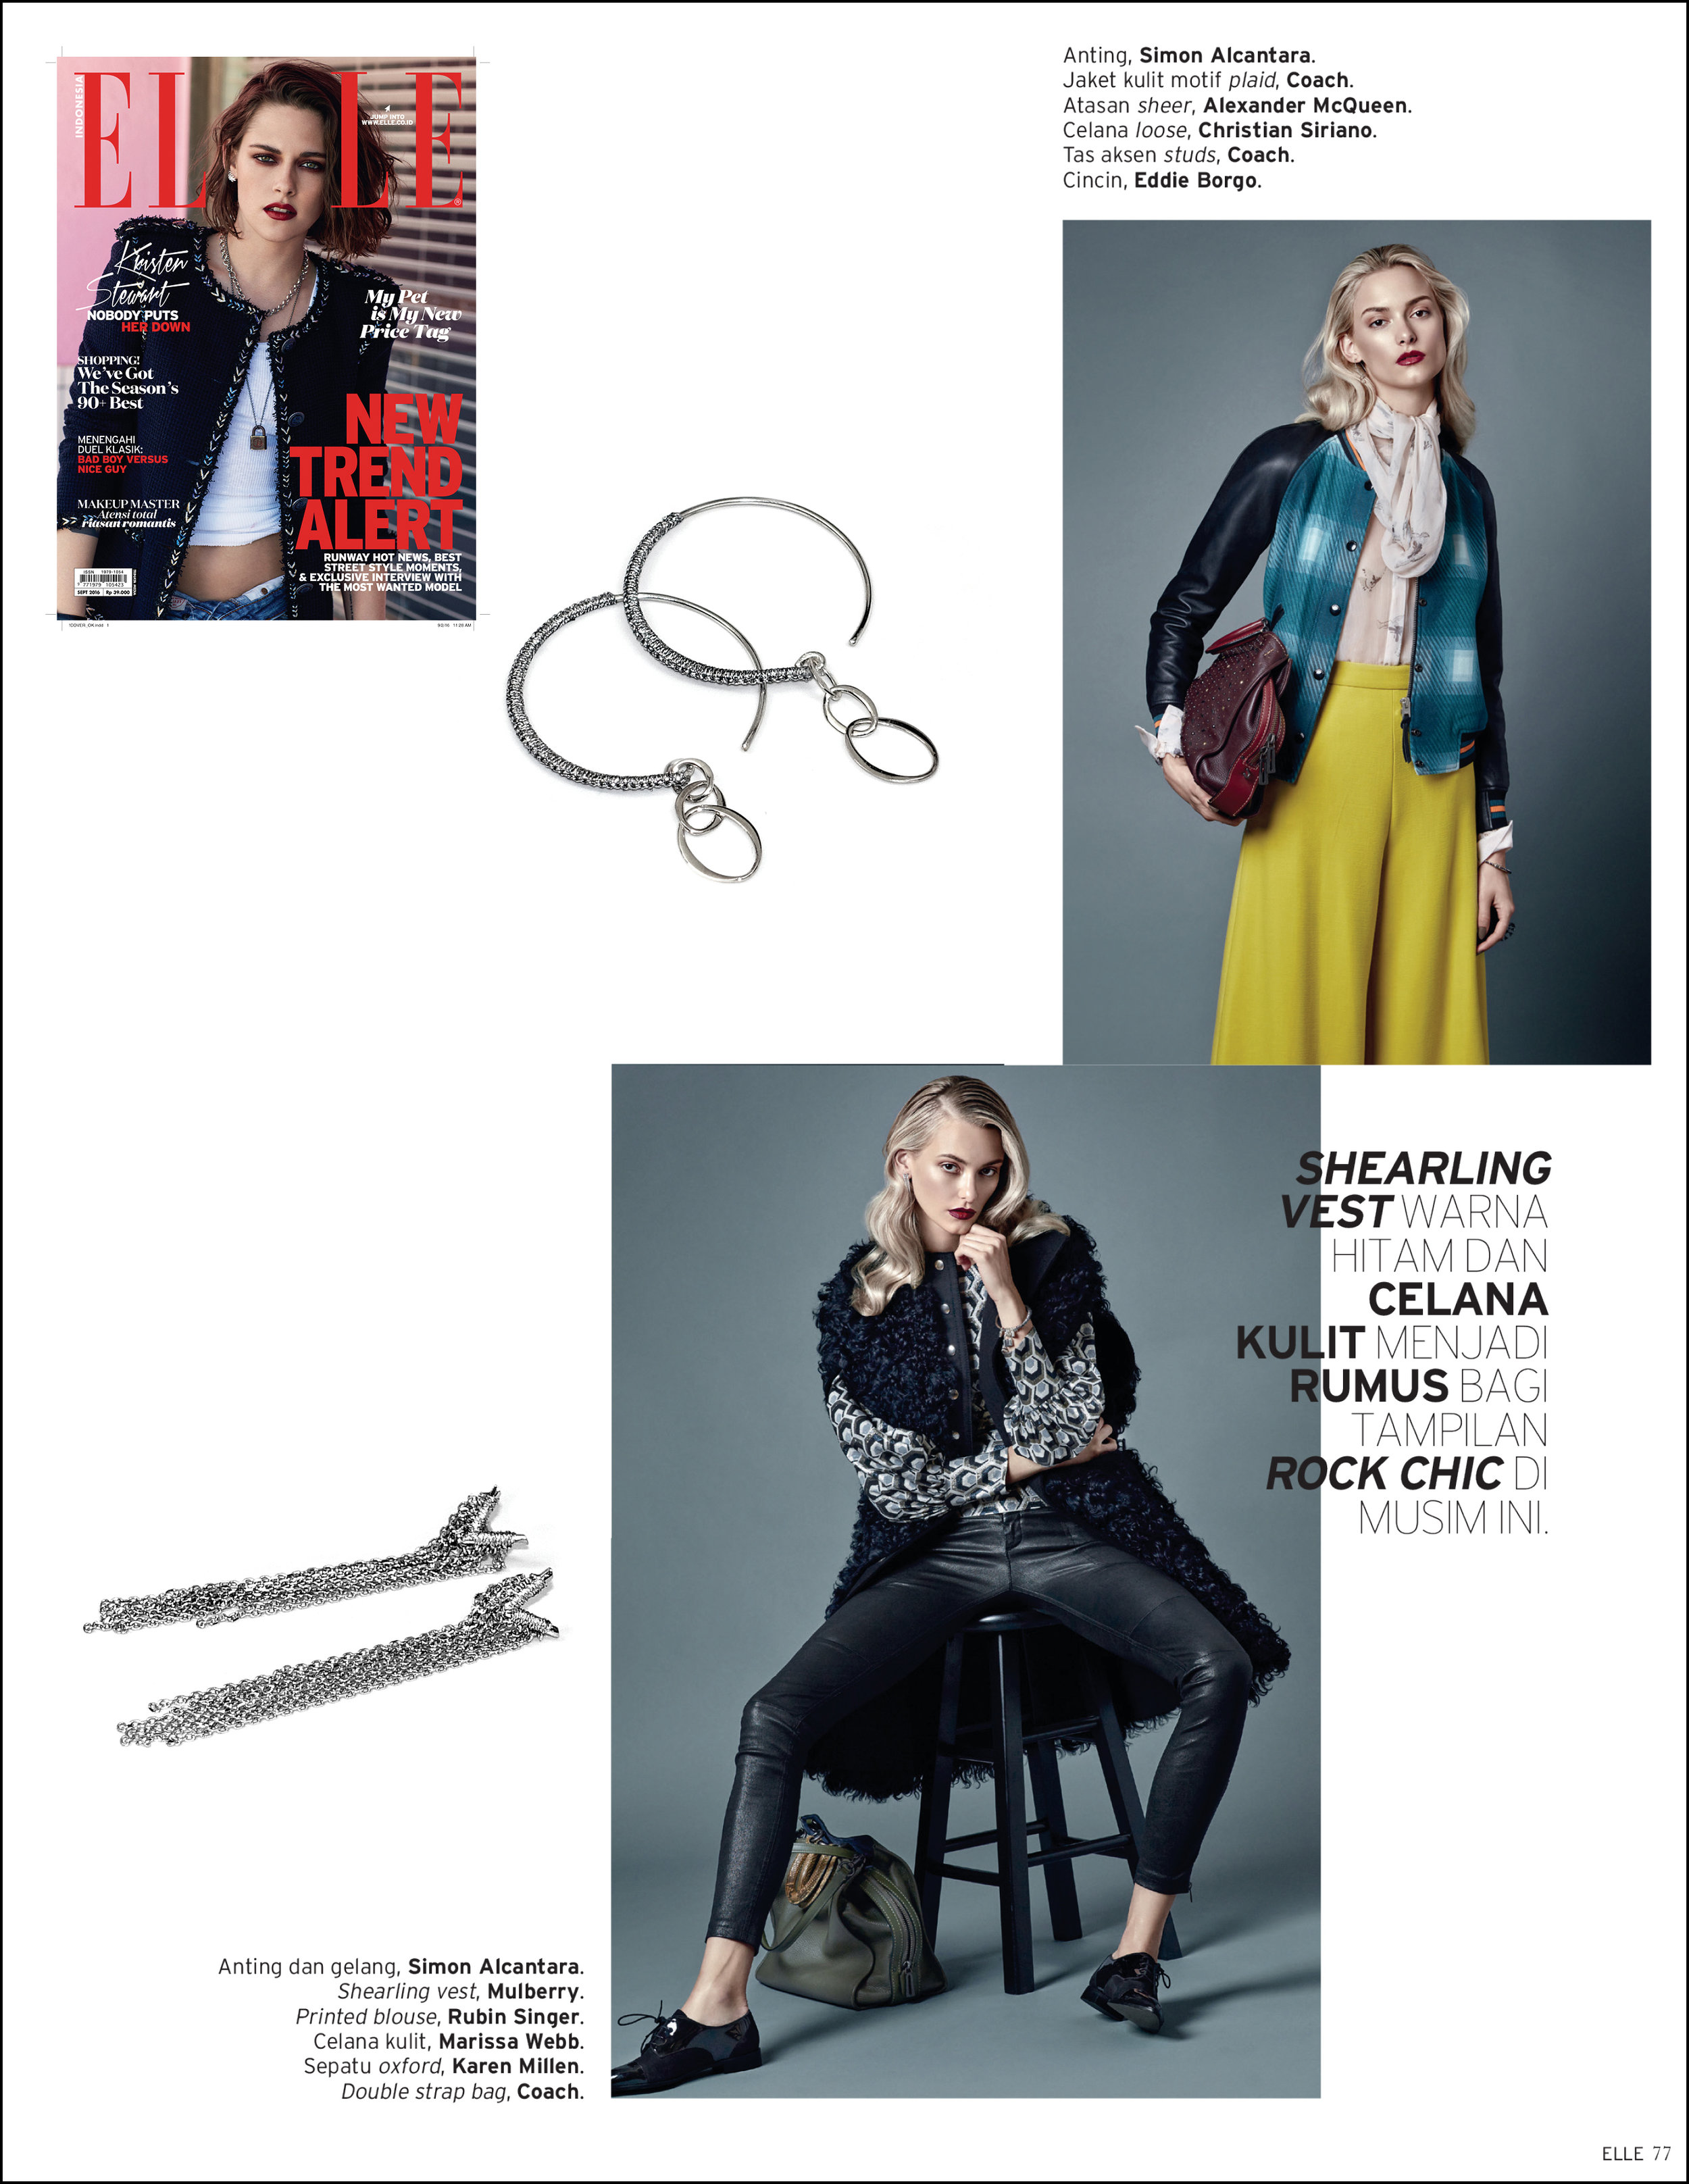 ELLE INDONESIA, SEPTEMBER 2016 ISSUE, SIMON ALCANTARA M31 ANDROMEDA COLLECTION EARRINGS, STYLED BY OSCAR MONTES DE OCA